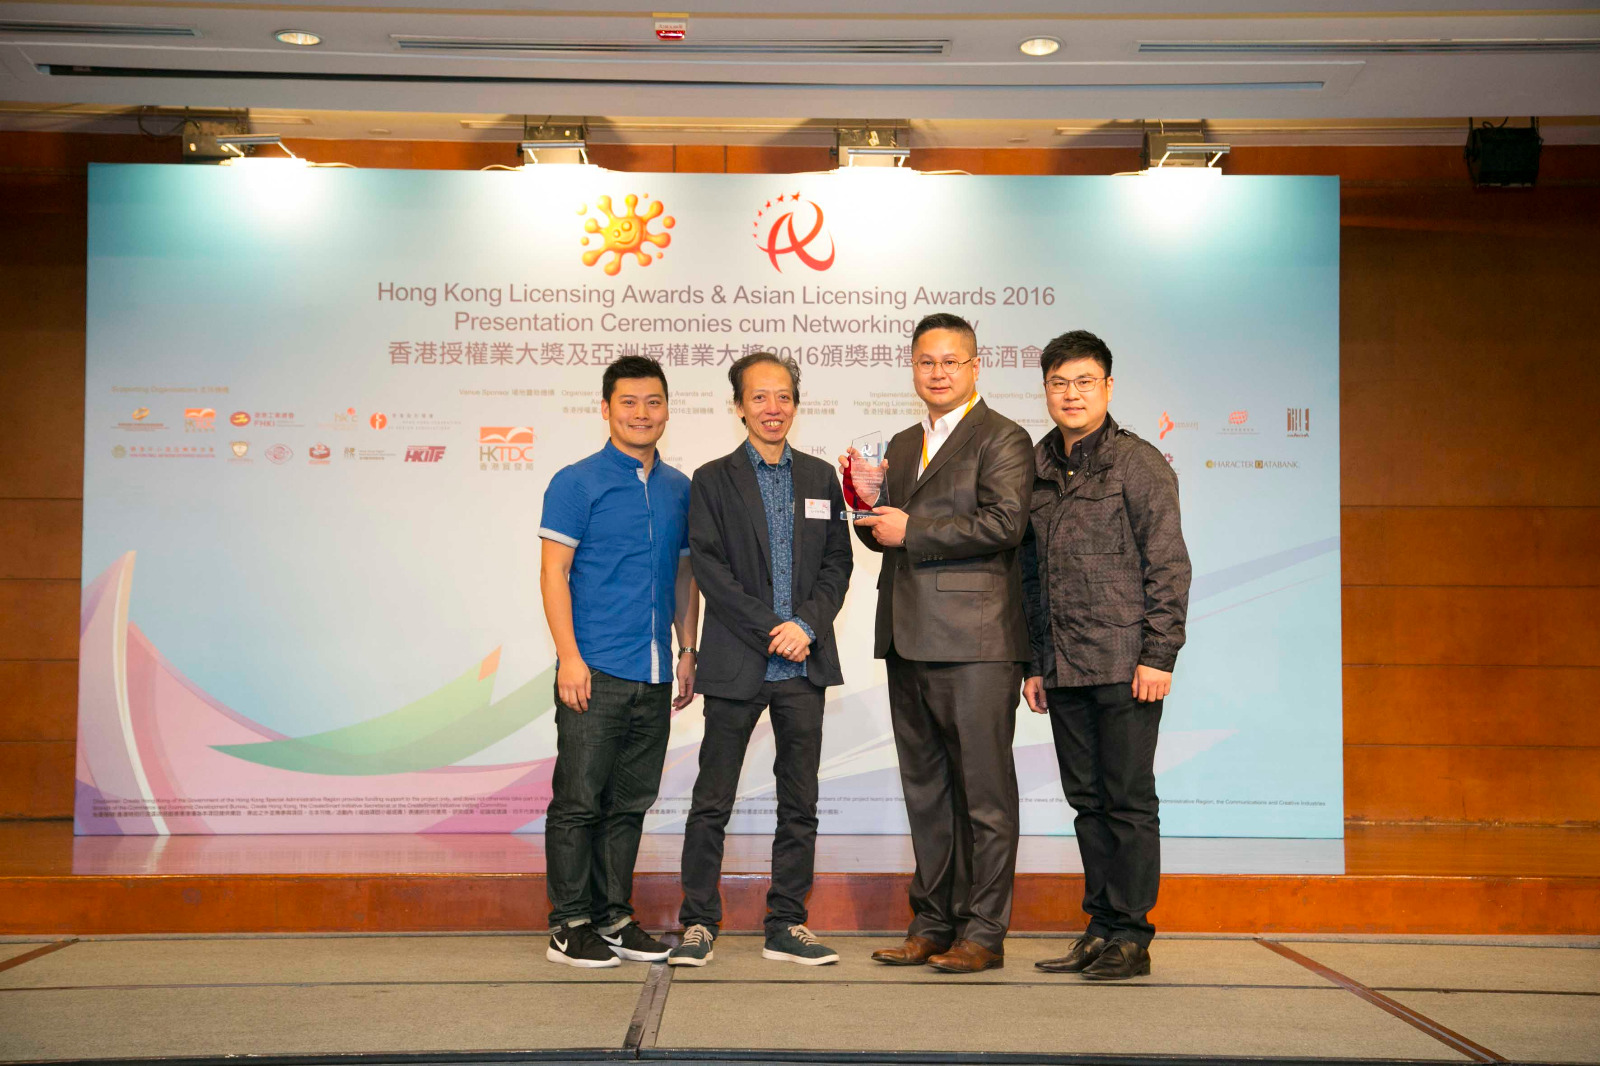 Best promotion Campaign - Mr. Lo Che Ying, Secretary of Hong Kong Animation Industry and Cultural Association (